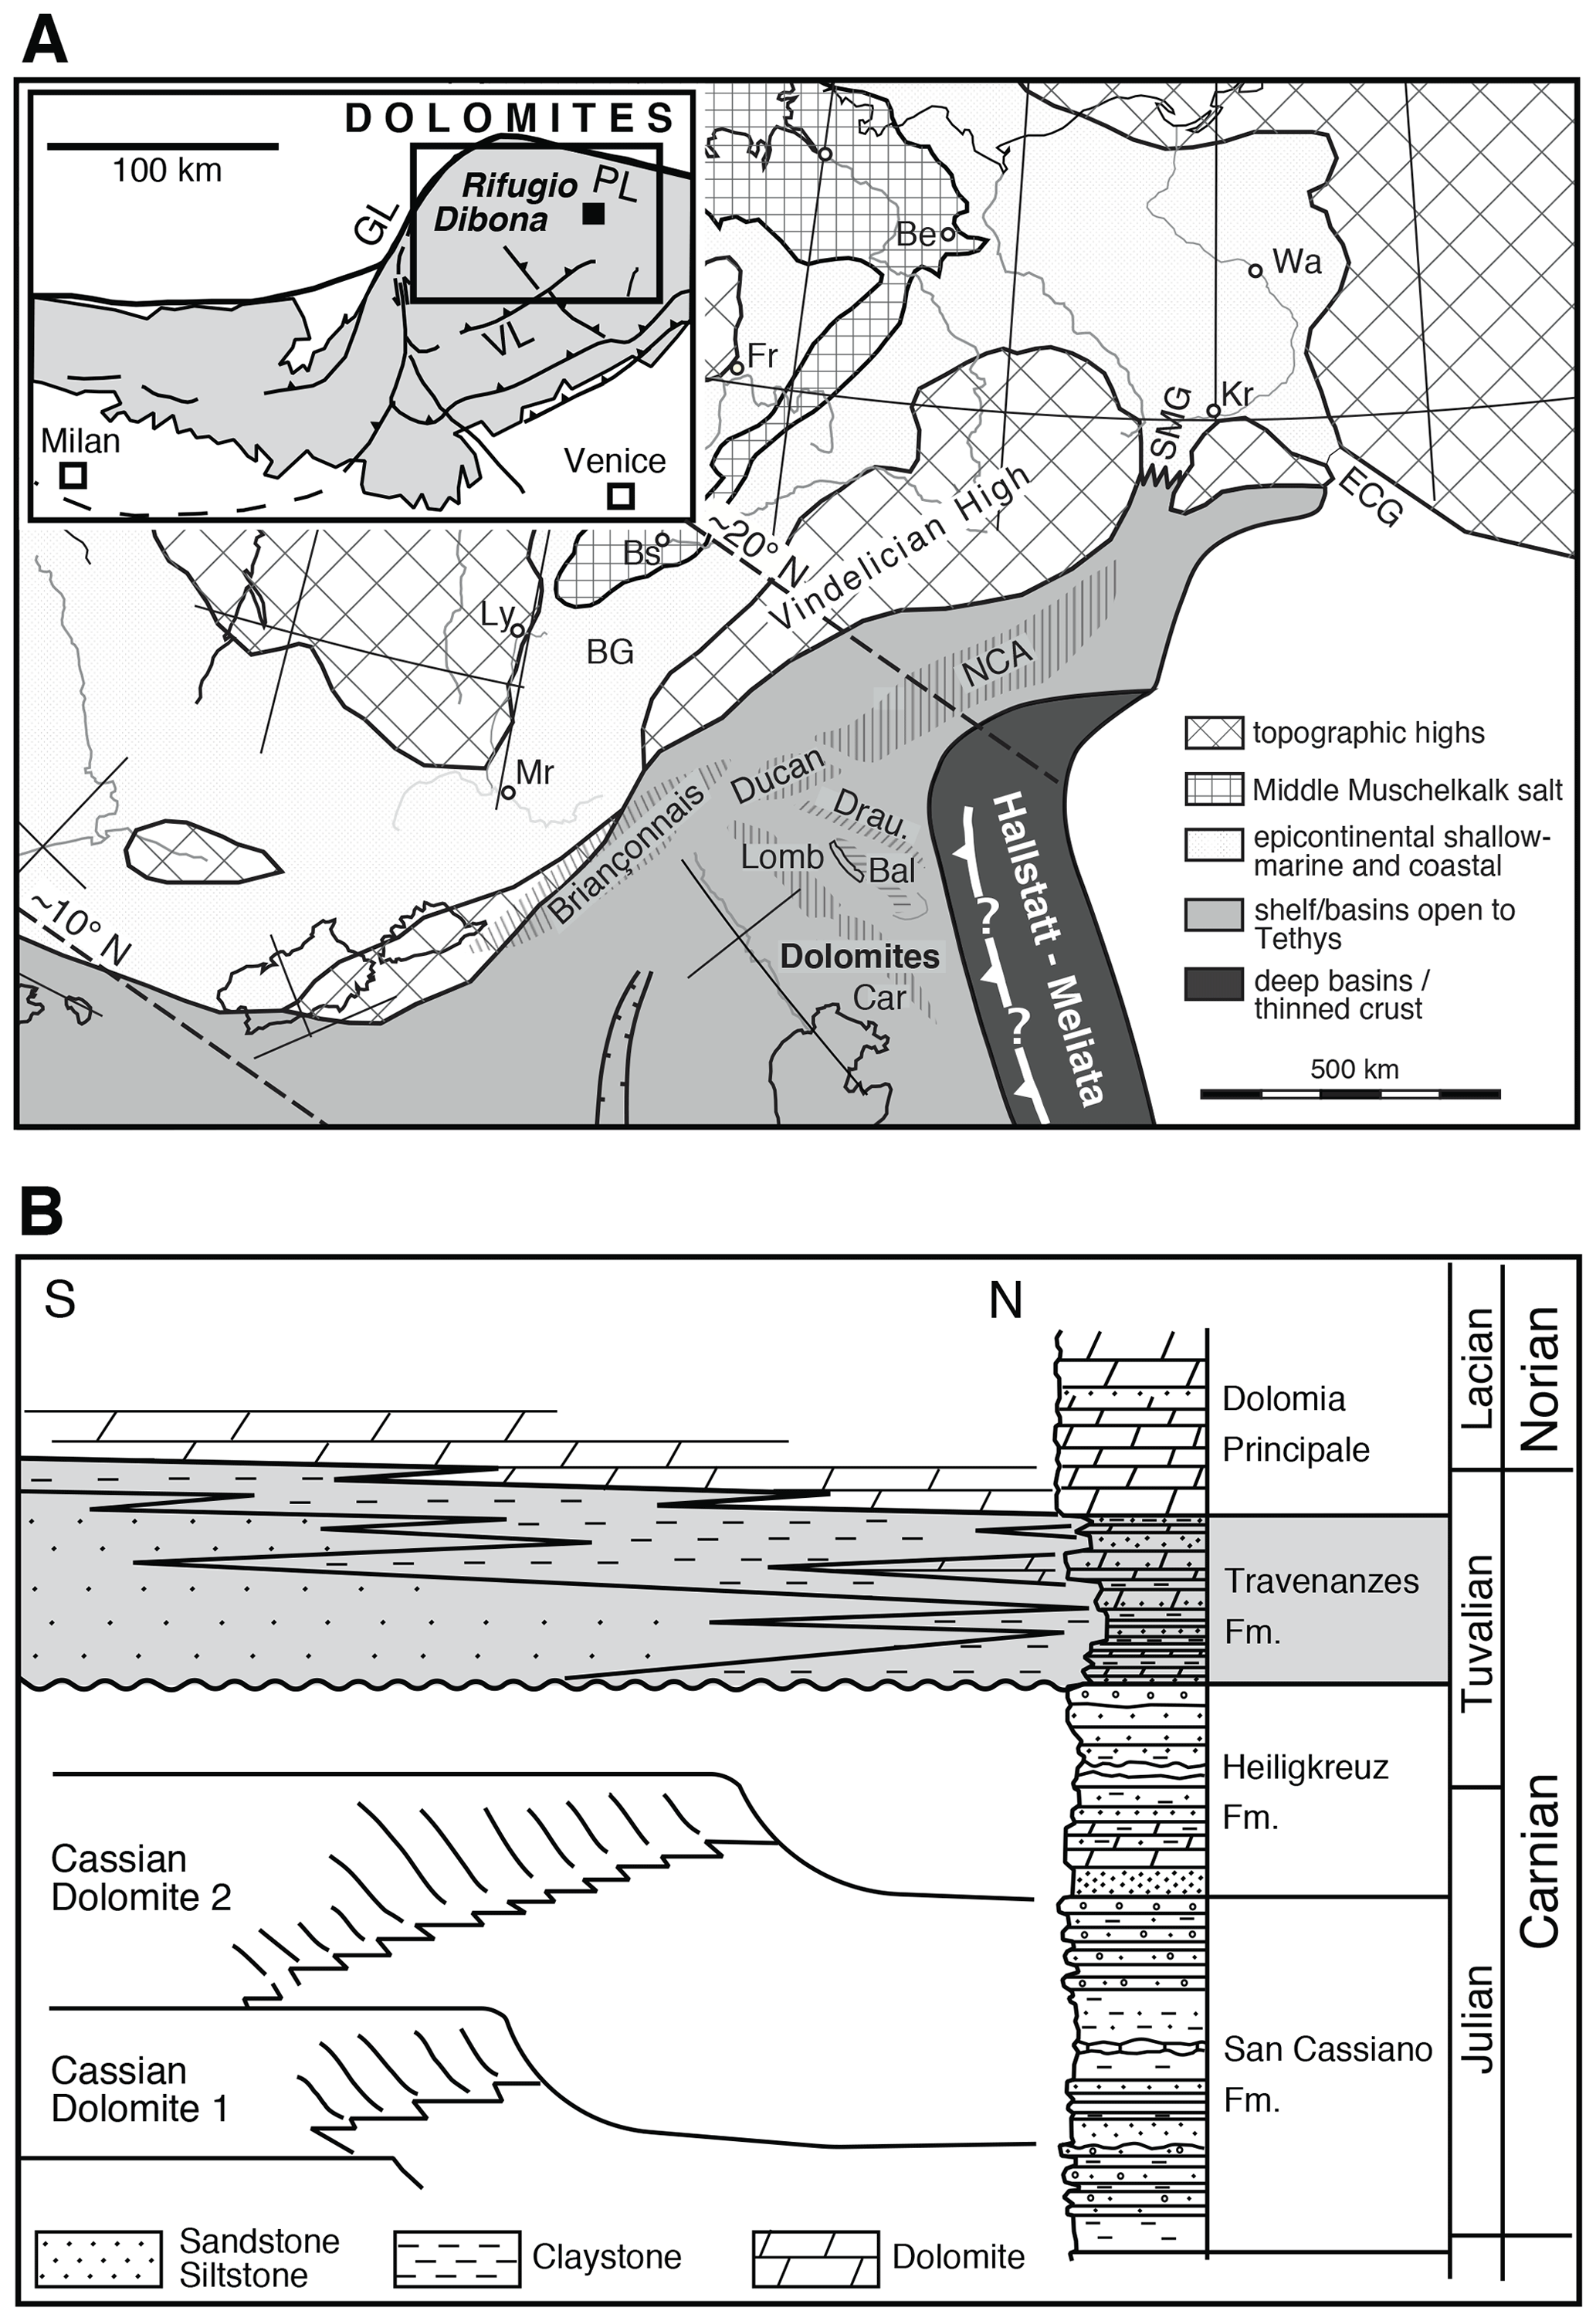 SE - Precipitation of dolomite from seawater on a Carnian